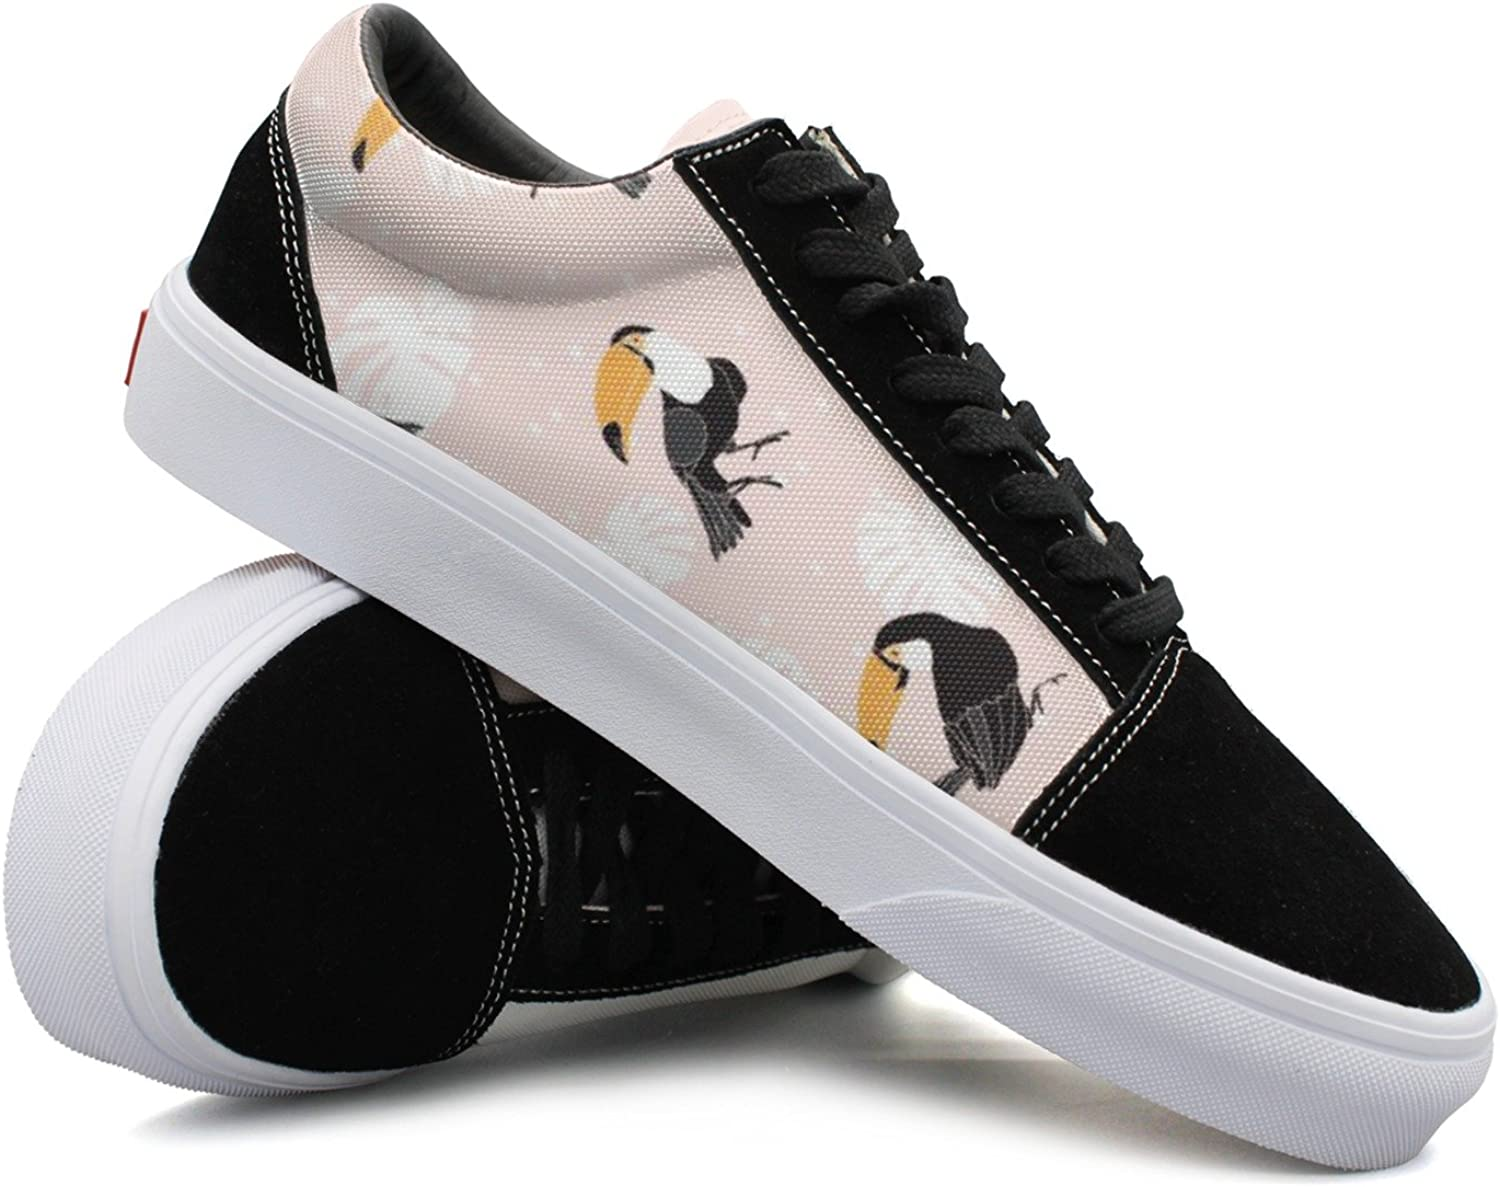 JDYHSGFR Cool Sneakers Pink Toco Toucan Plam Casual Plate shoes